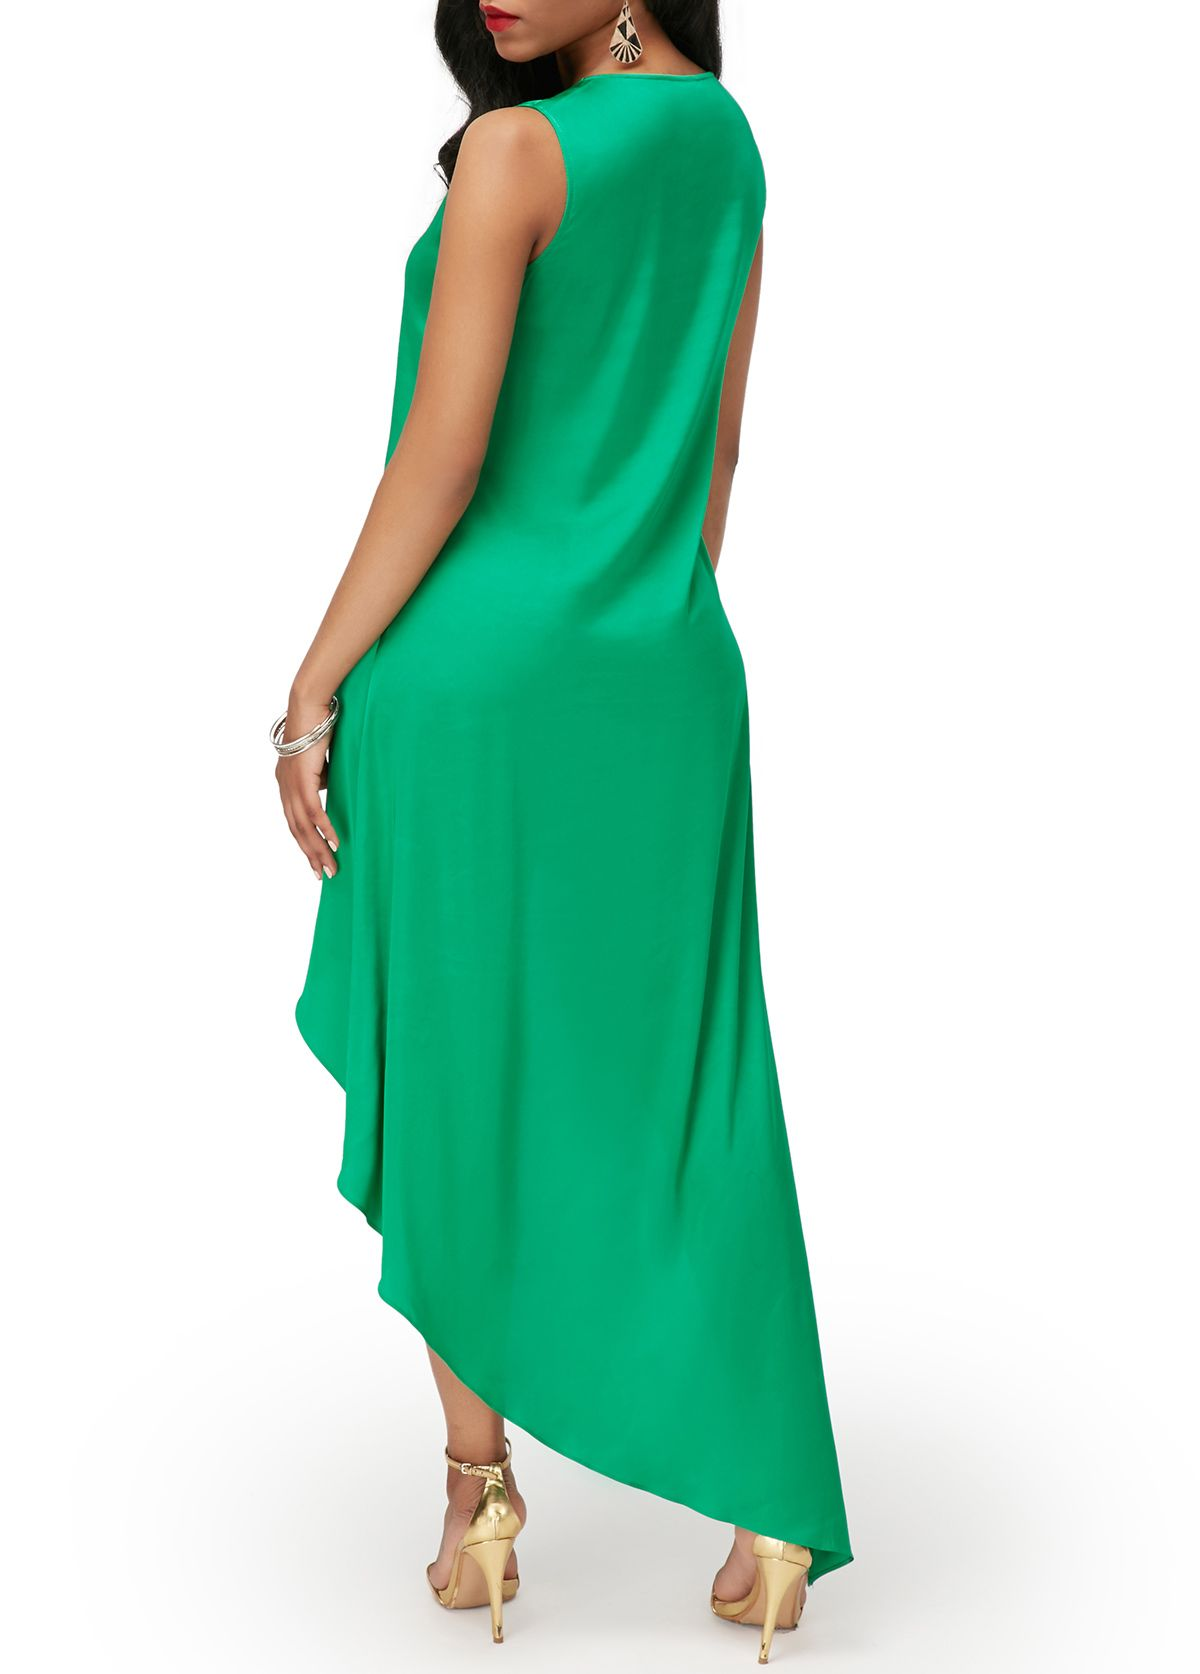 Asymmetric Hem V Neck Green Sleeveless Dress on sale only US$34.90 ...